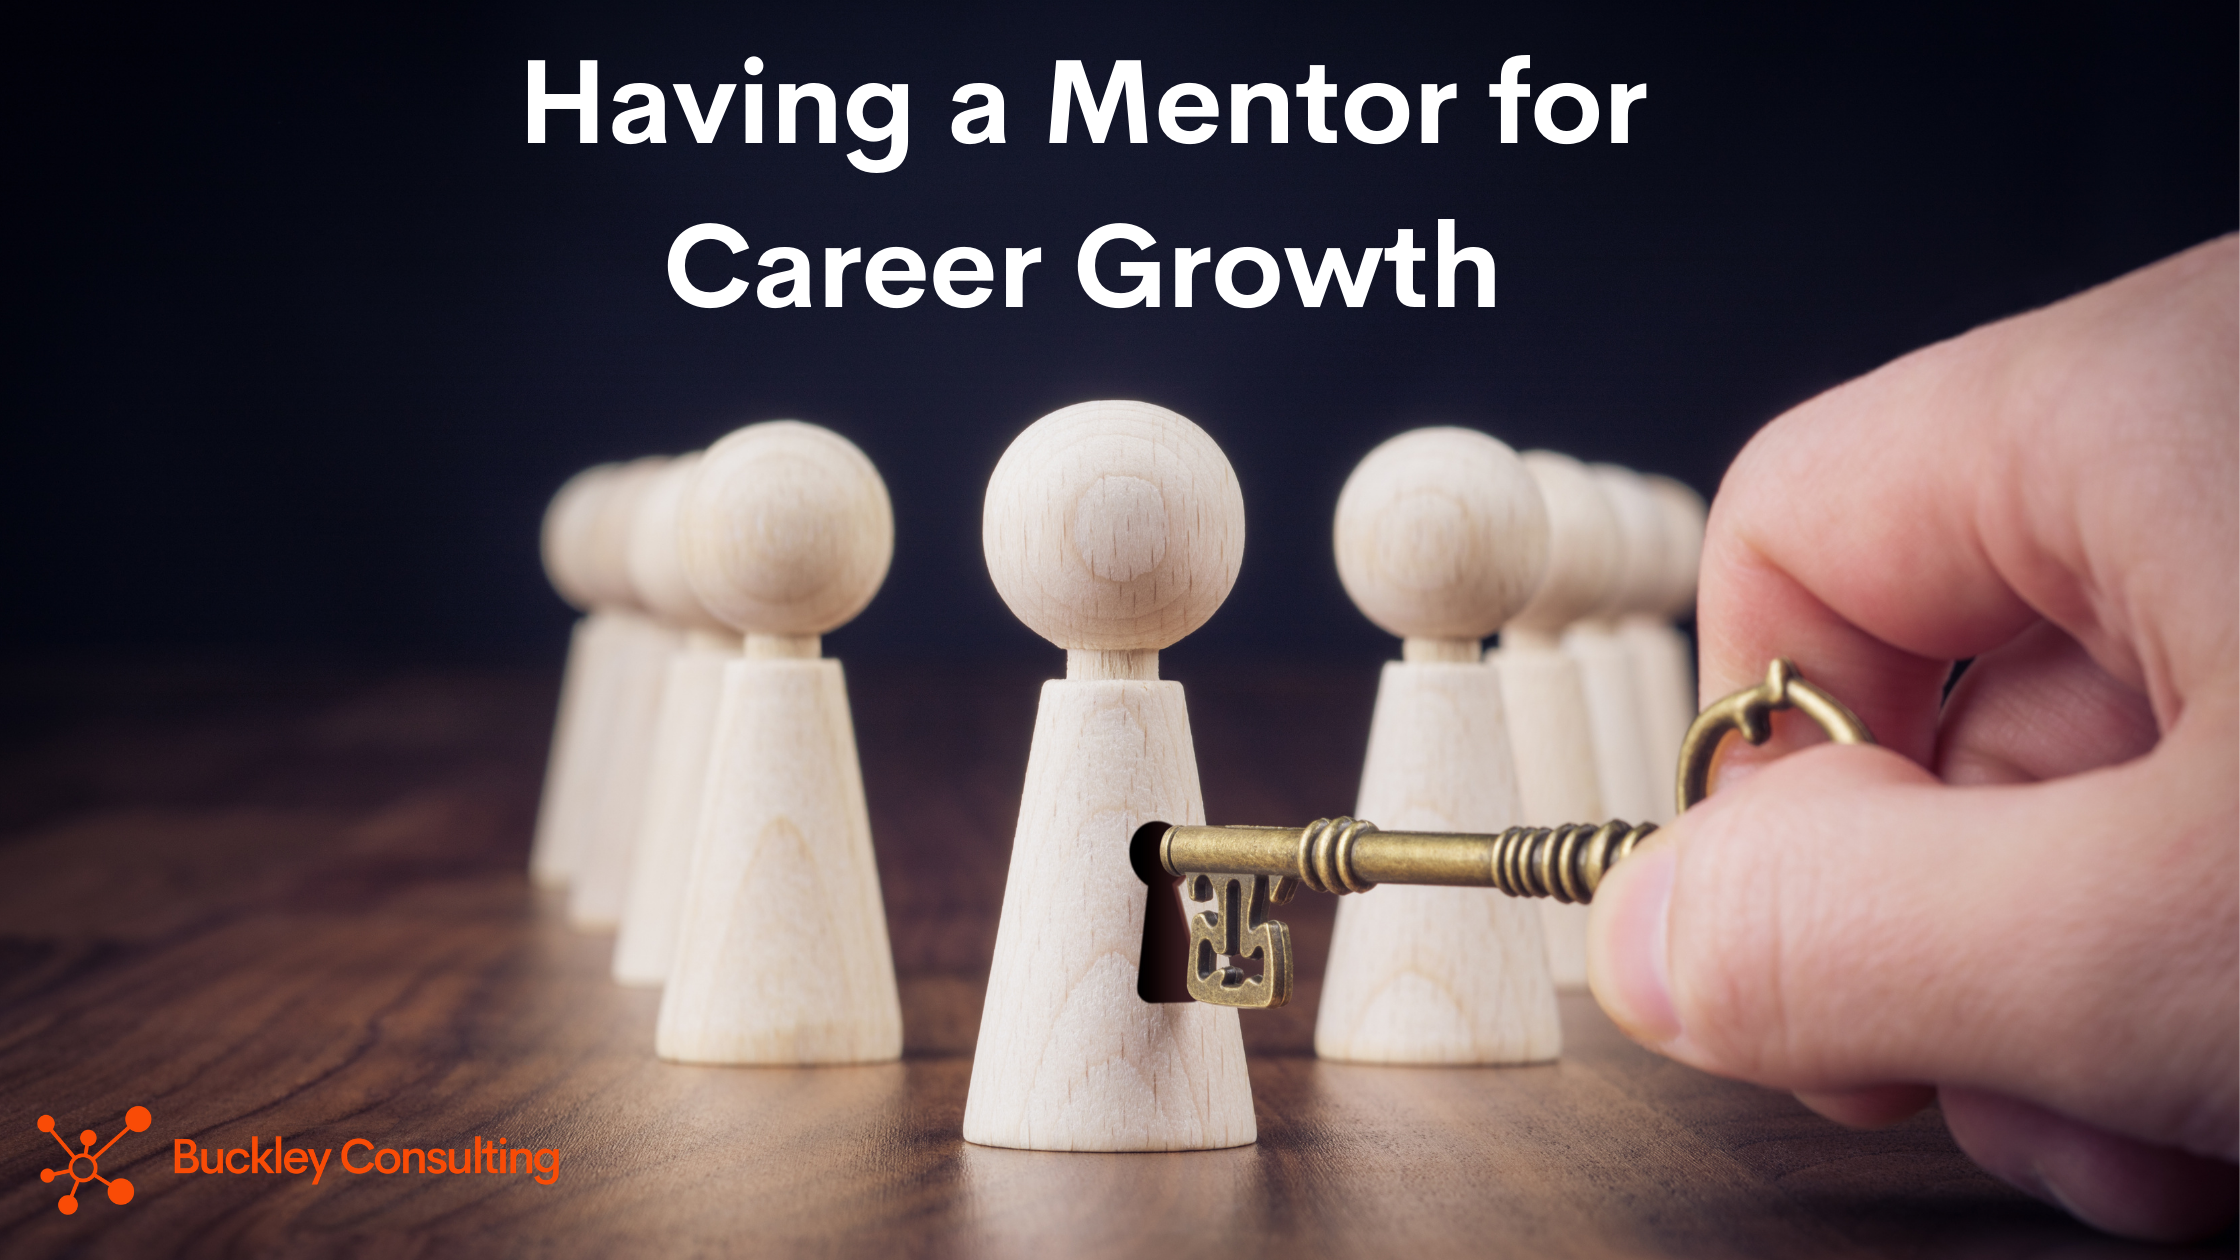 Having a Mentor for Career Growth